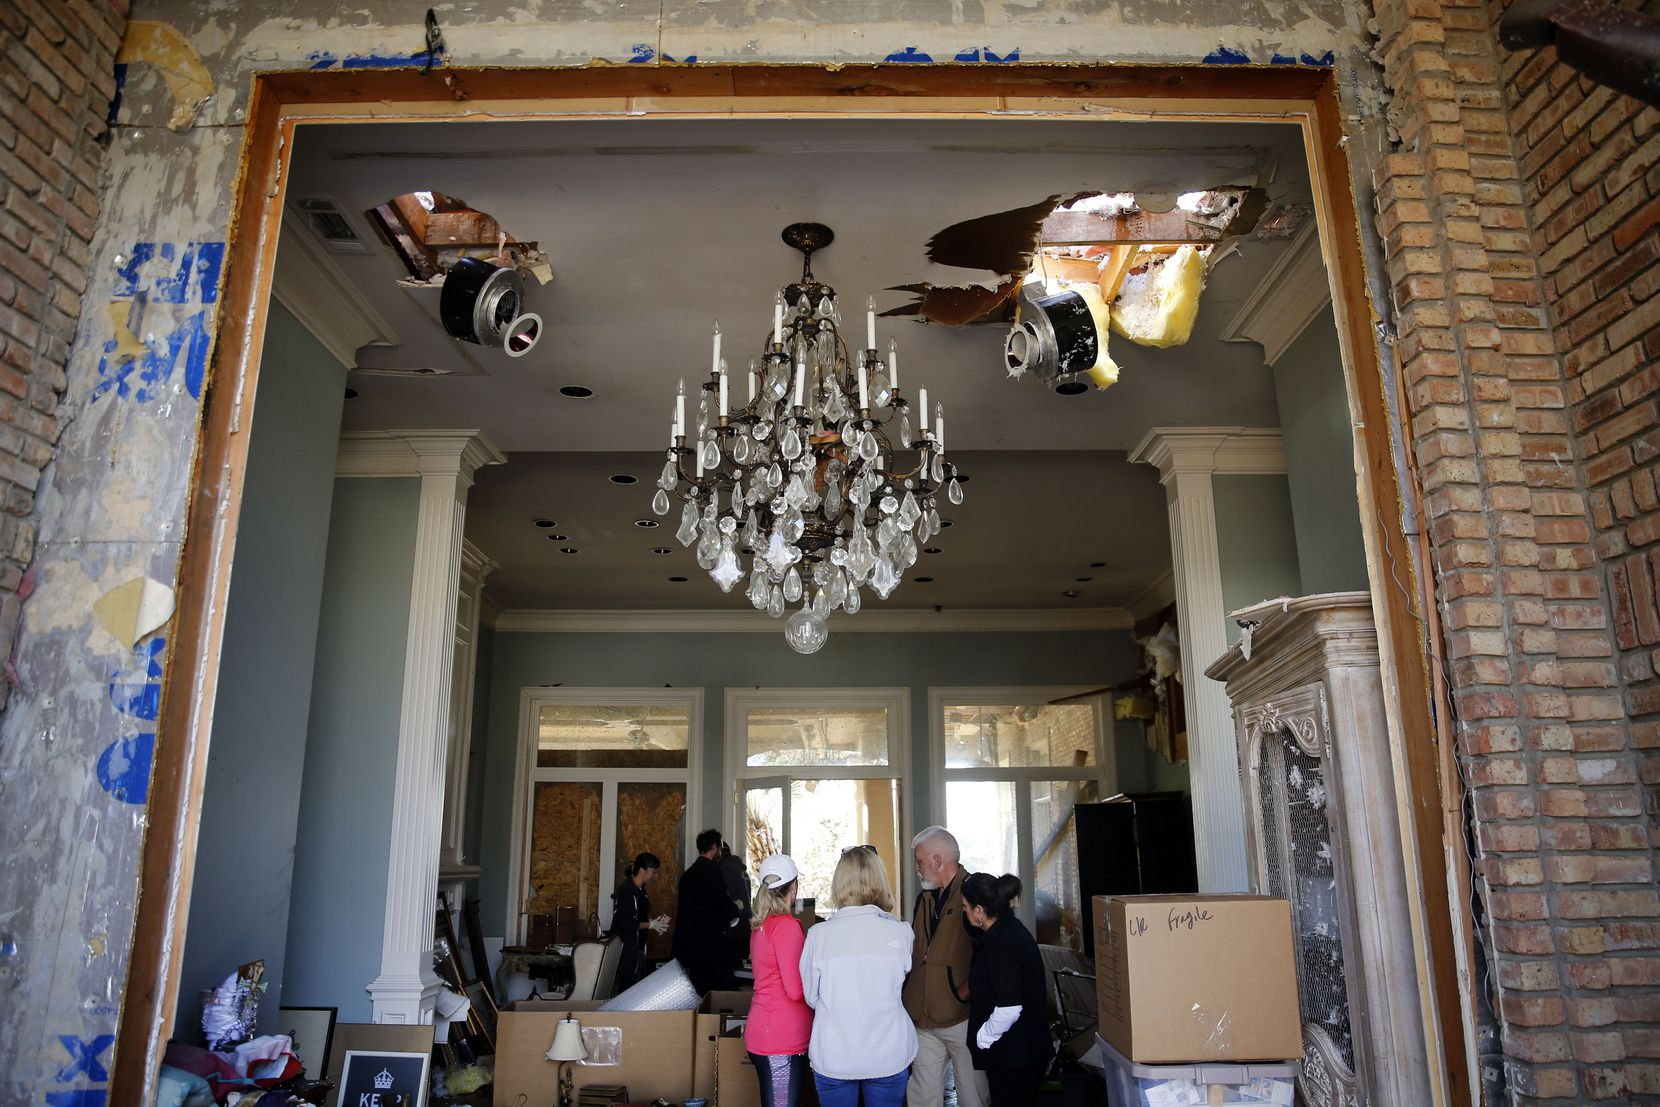 Homeowner Brenda Schneider said the crystal chandelier in her front entryway on Palomar Lane wasn't damaged, despite the front door being blown out. She and her wheelchair-bound husband, Fred, escaped through a broken-out dining room window, Tuesday, Oct. 22, 2019. Art of Dallas-Fort Worth helped remove artwork from their home.